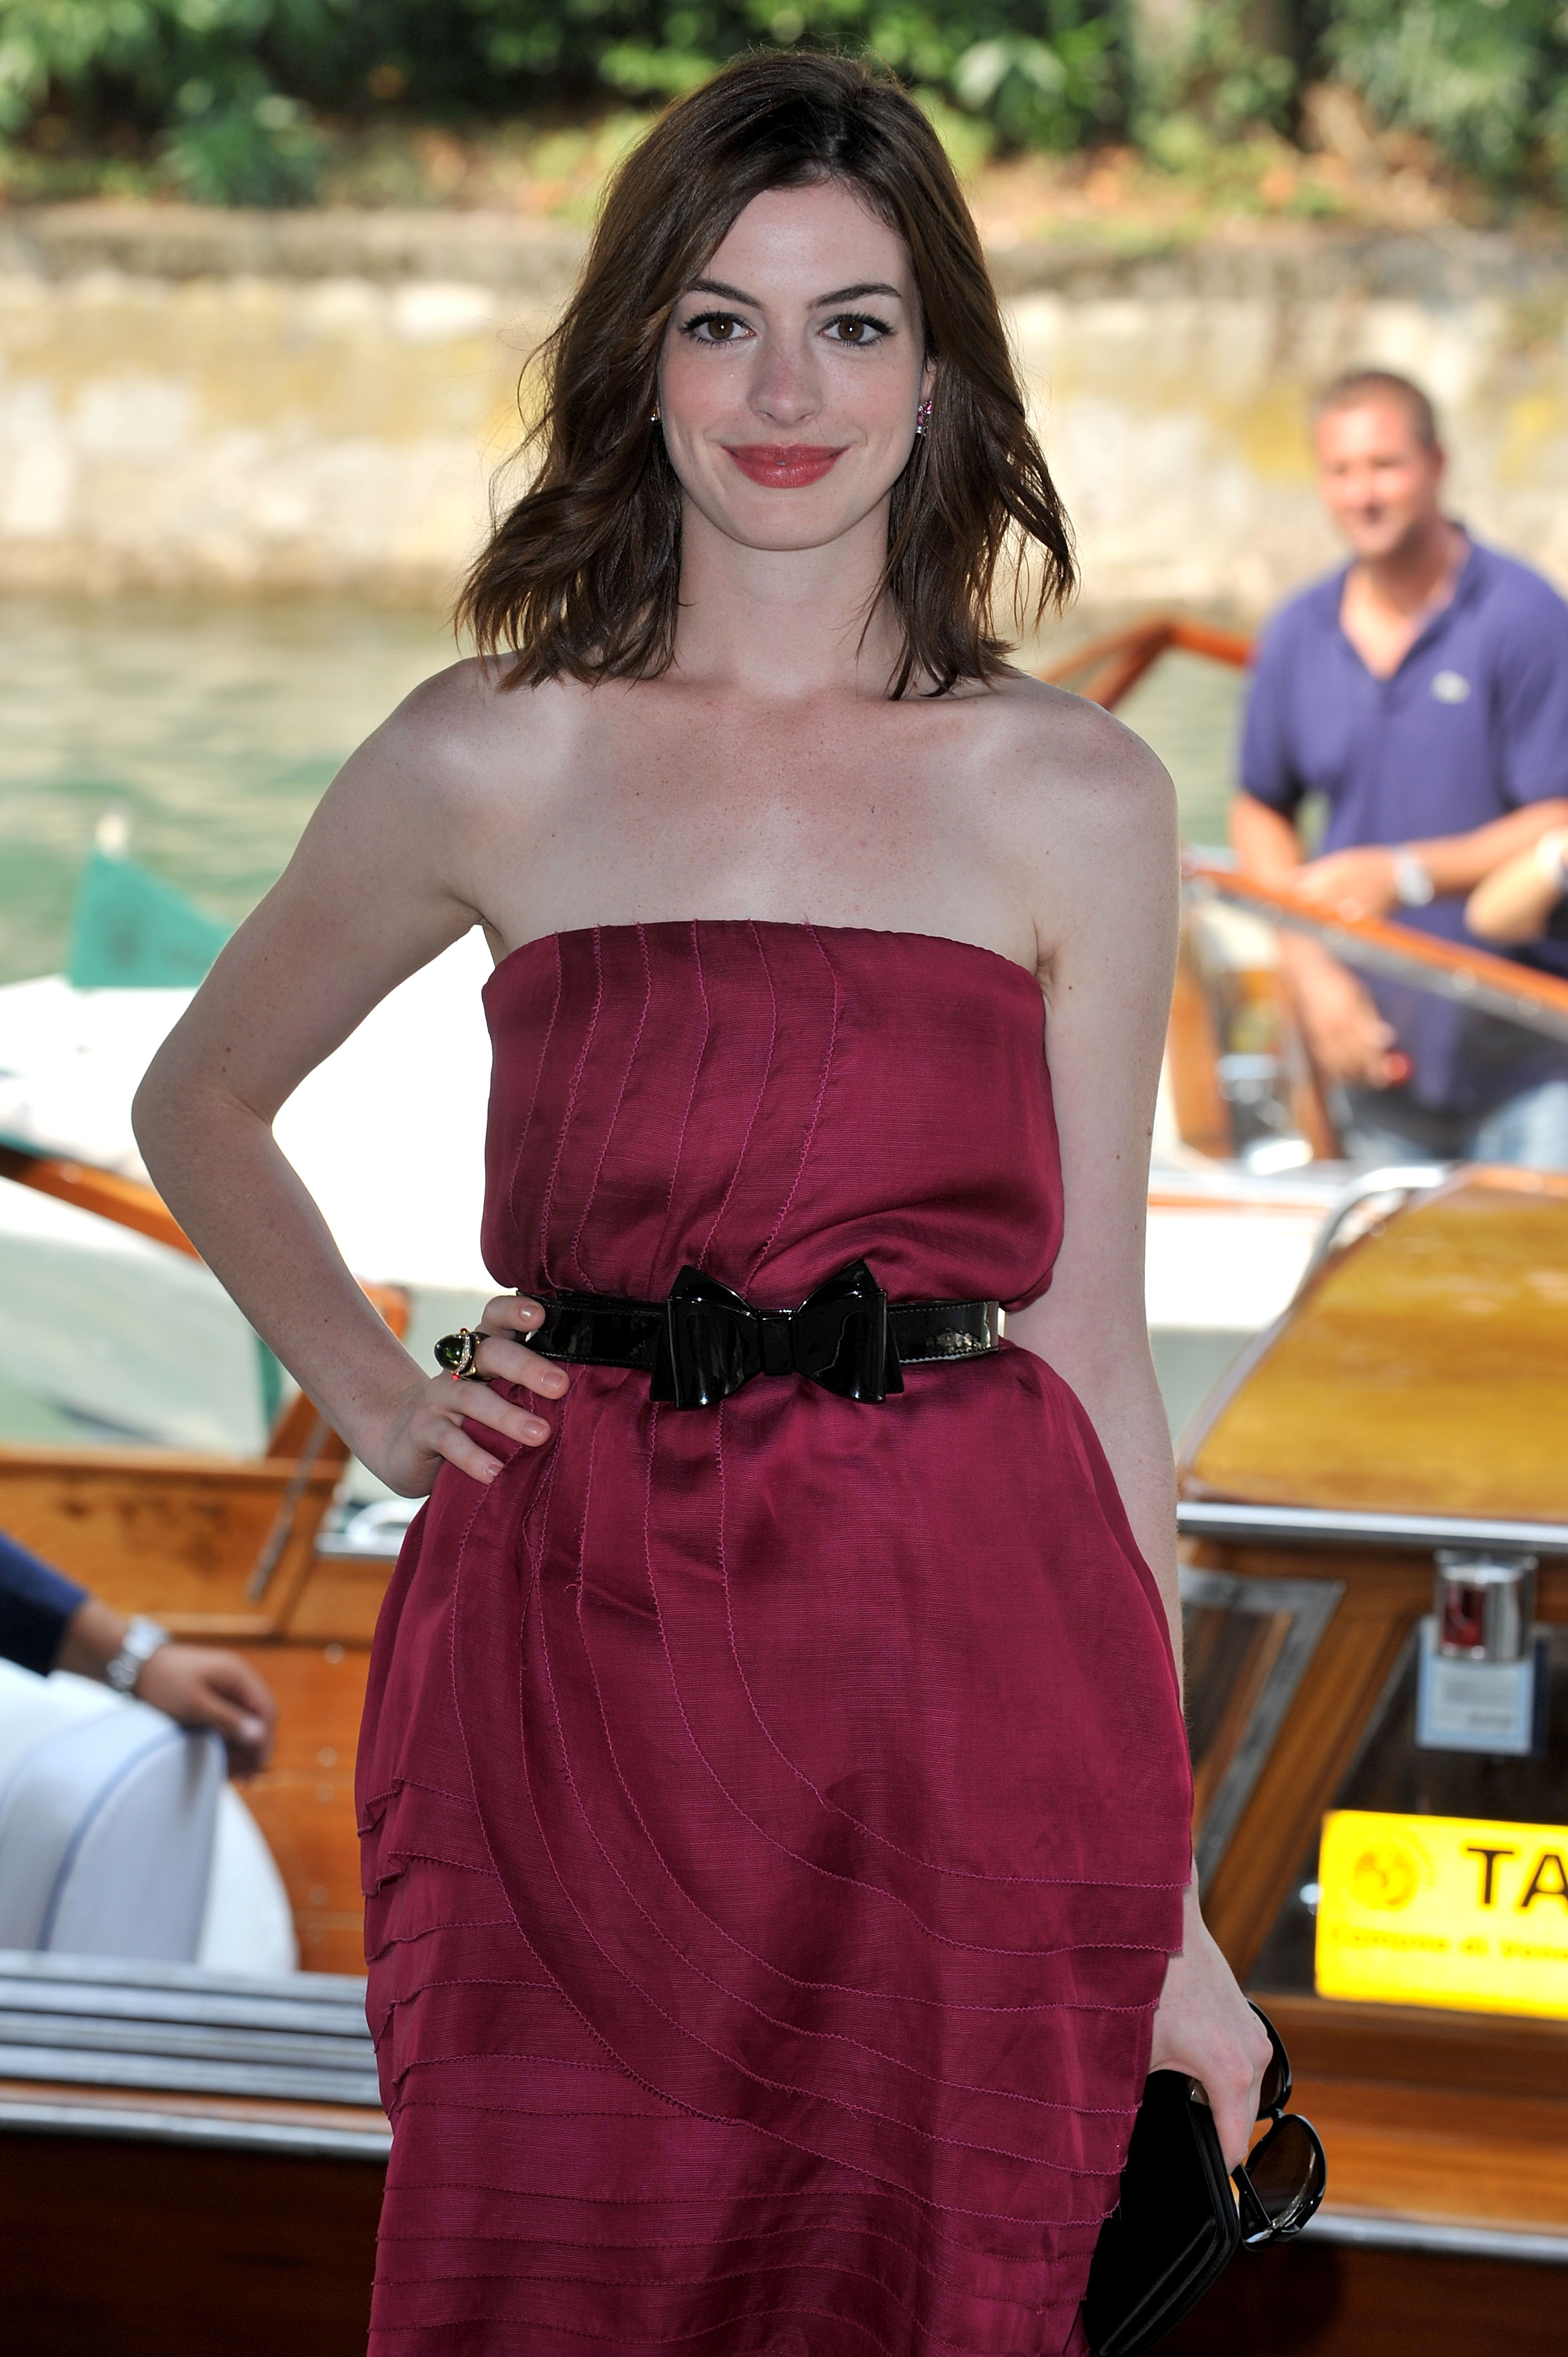 43083_Anne_Hathaway_arrives_at_the_Excelsior_Hotel_Venice-02_122_572lo.jpg